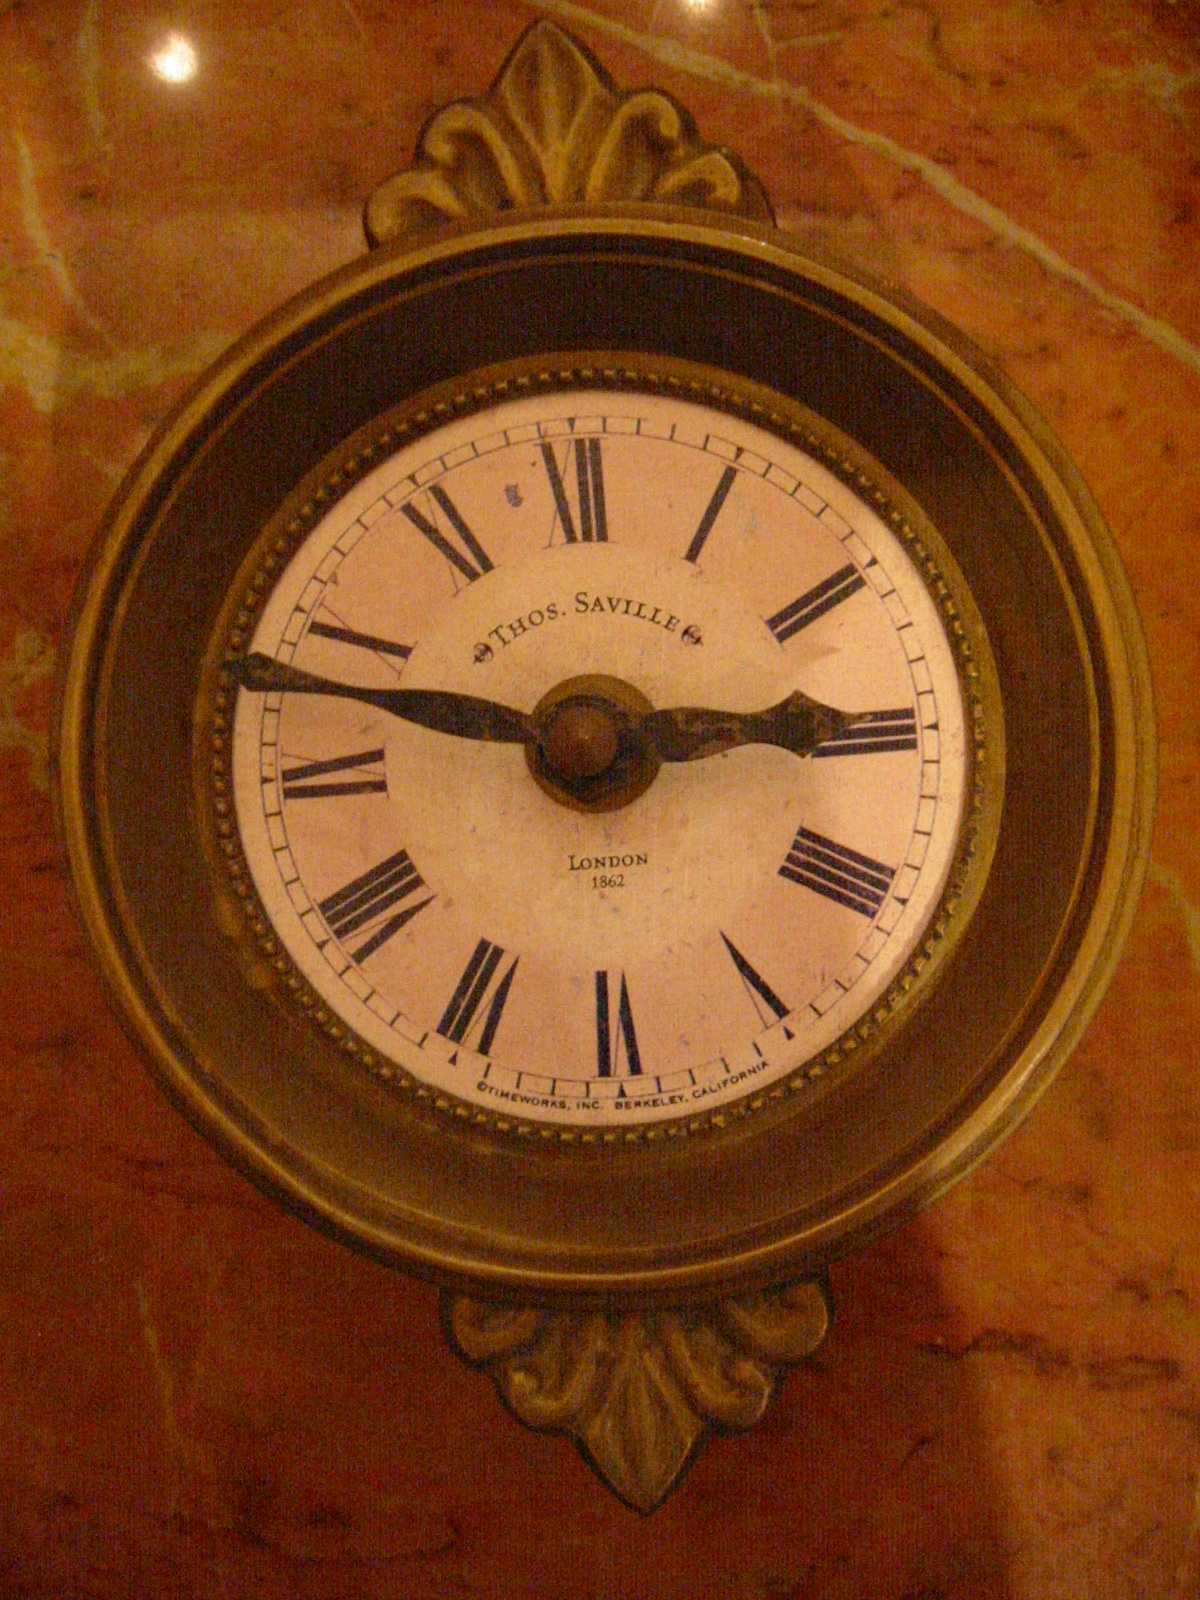 Thos saville london style brass pendulum wall clock for for Antique wall clock for sale